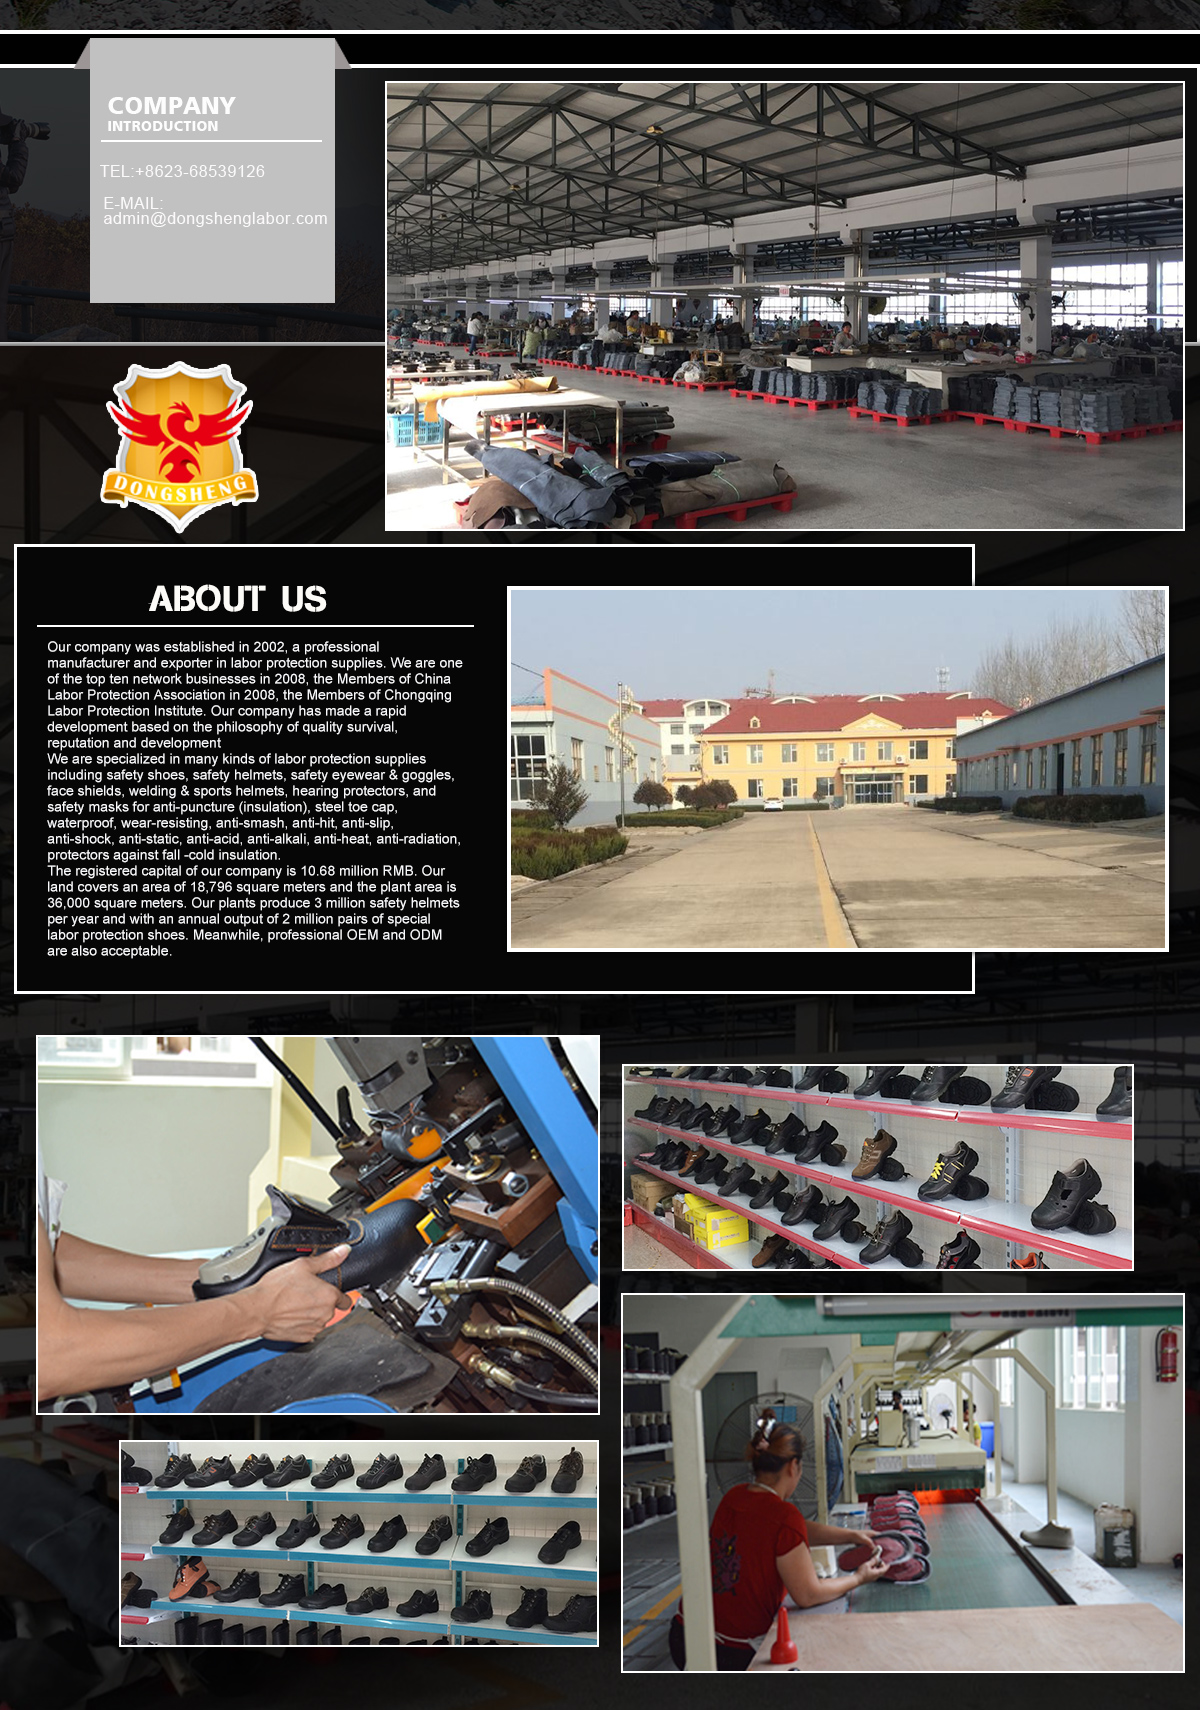 Chongqing Dongsheng Labor Protection Supplies Co Ltd Military Sepatu Sneakers Pria Bbr378 Tile